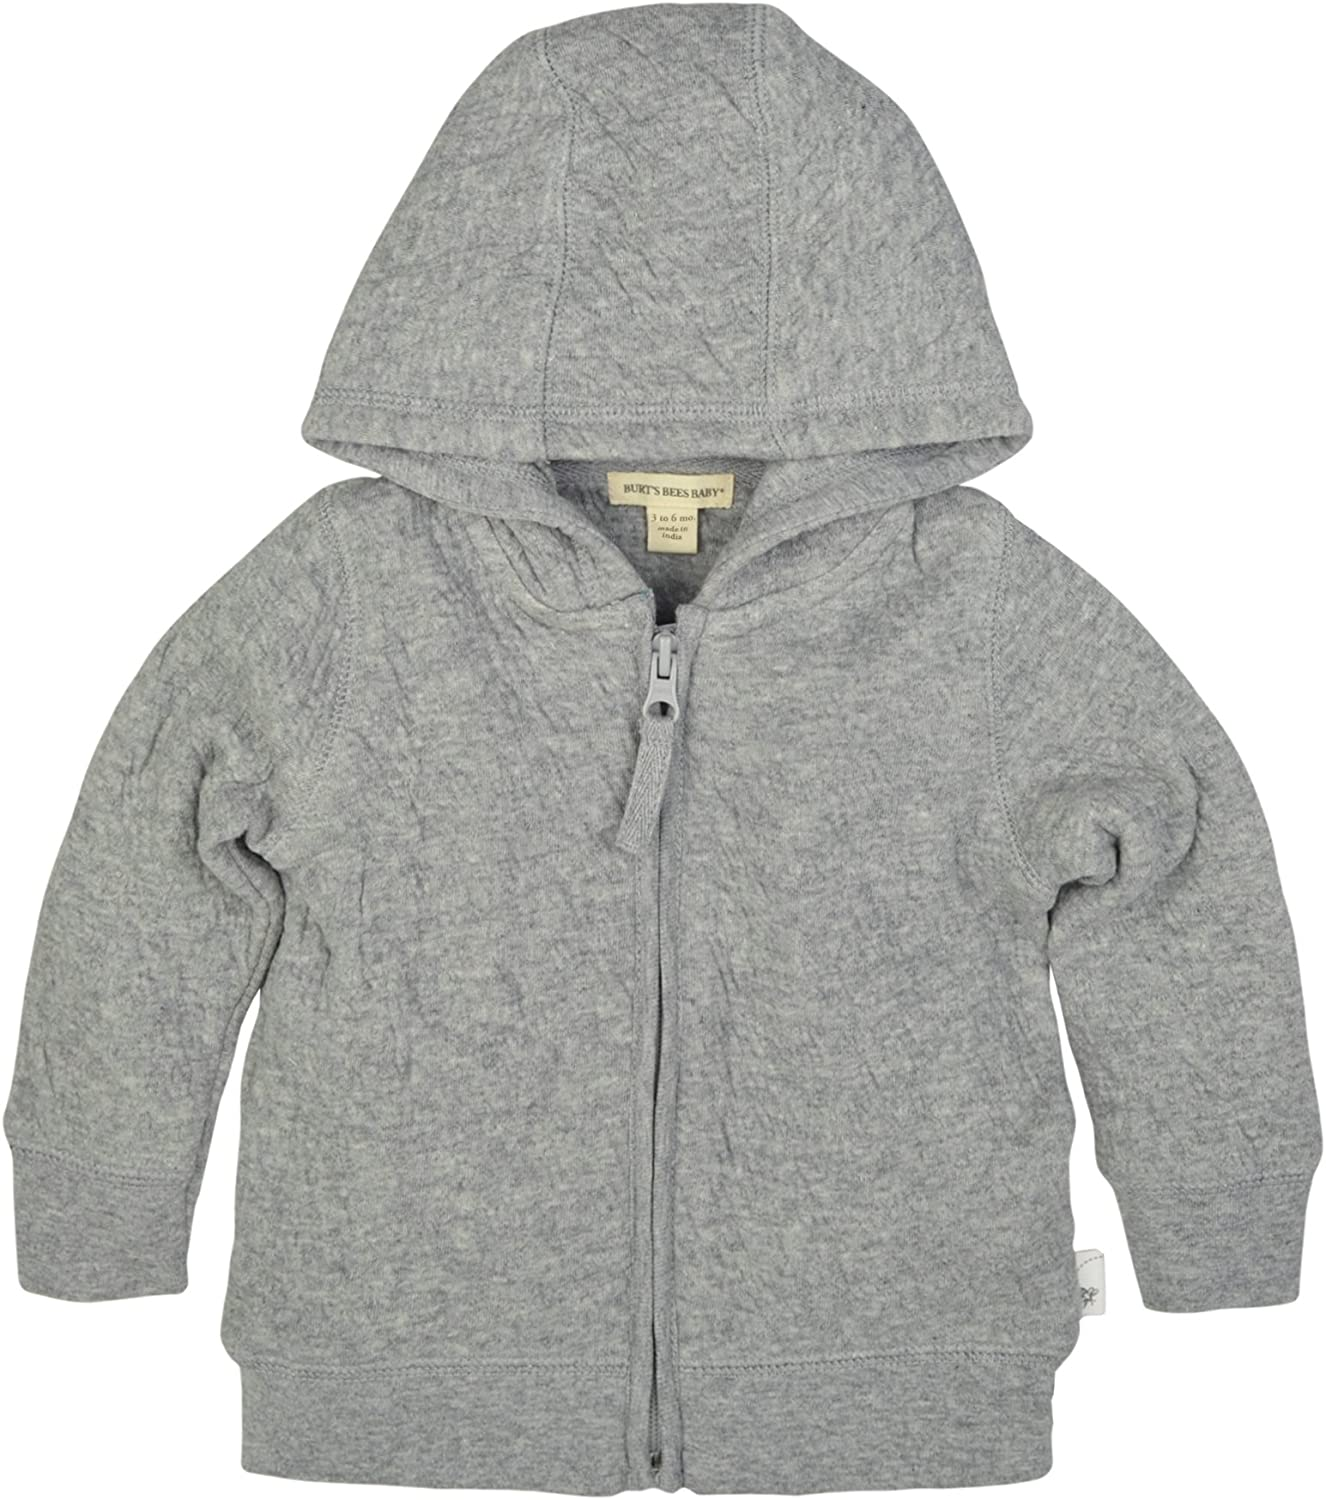 Burt's Bees Baby Unisex Baby Sweatshirts, Lightweight Zip-Up Jackets & Hooded Coats, Organic Cotton, Heather Grey Quilted Jacket, 6-9 Months: Clothing